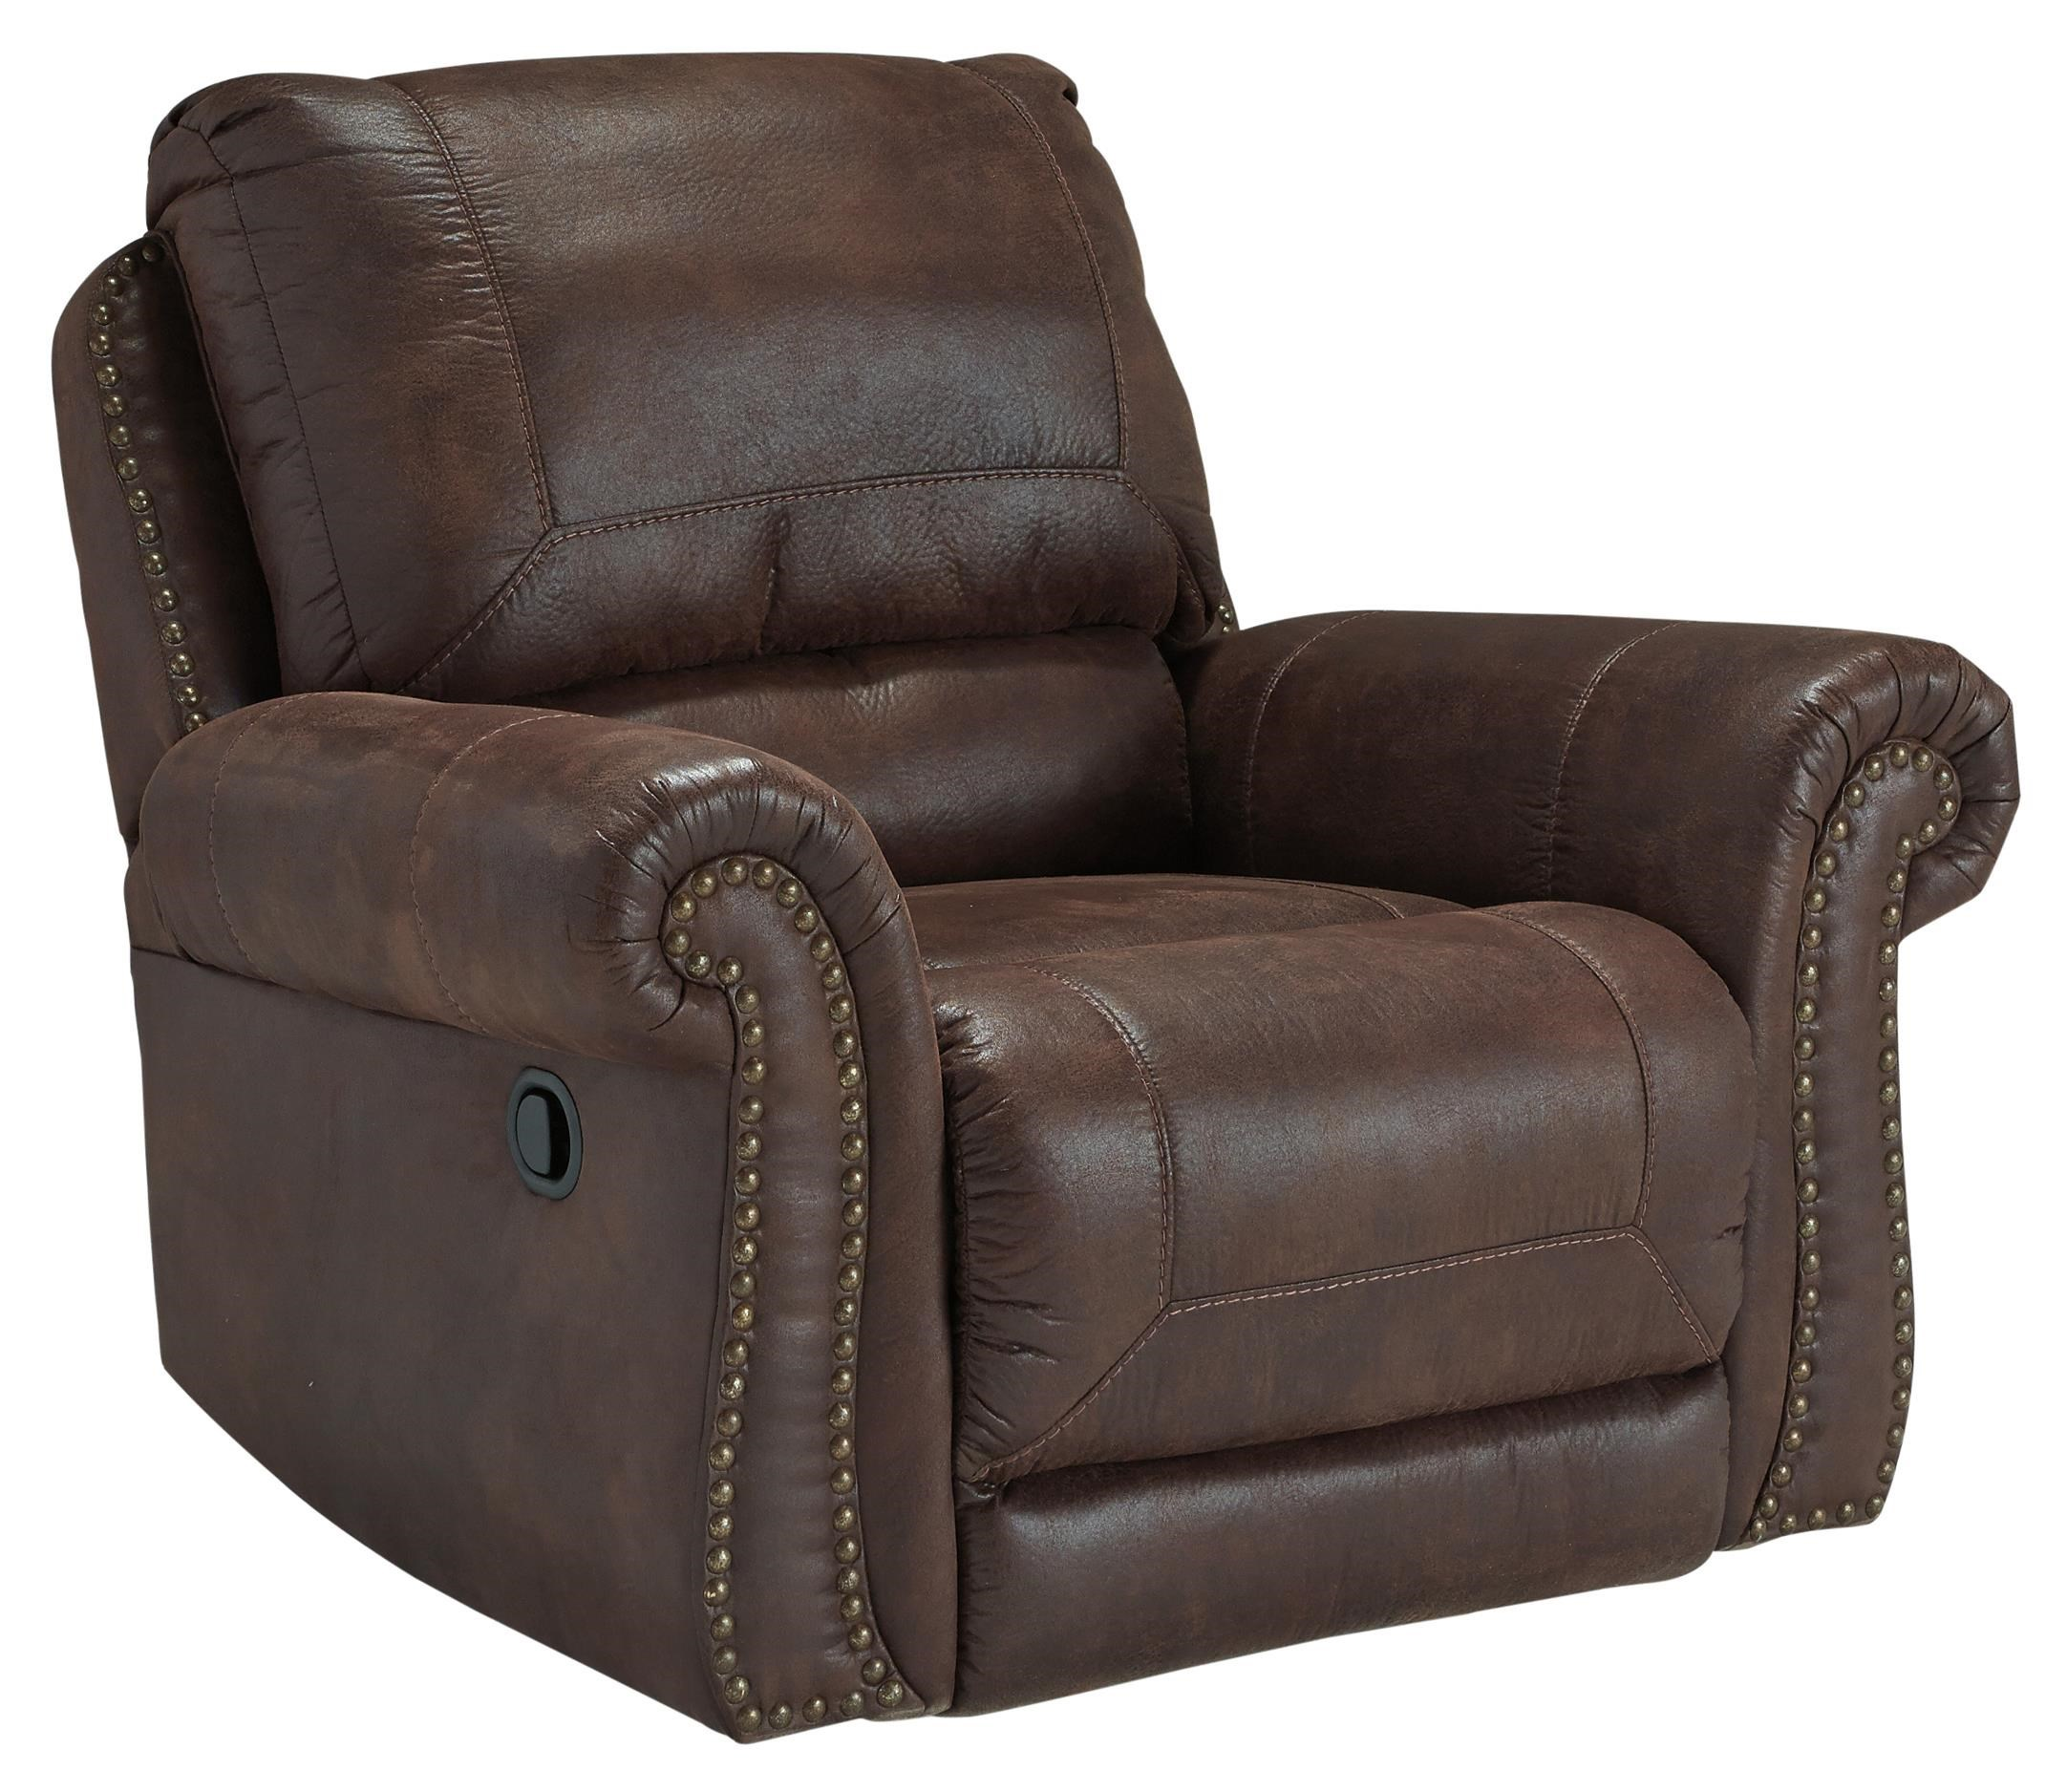 Faux Leather Rocker Recliner with Rolled Arms and Nailhead Trim